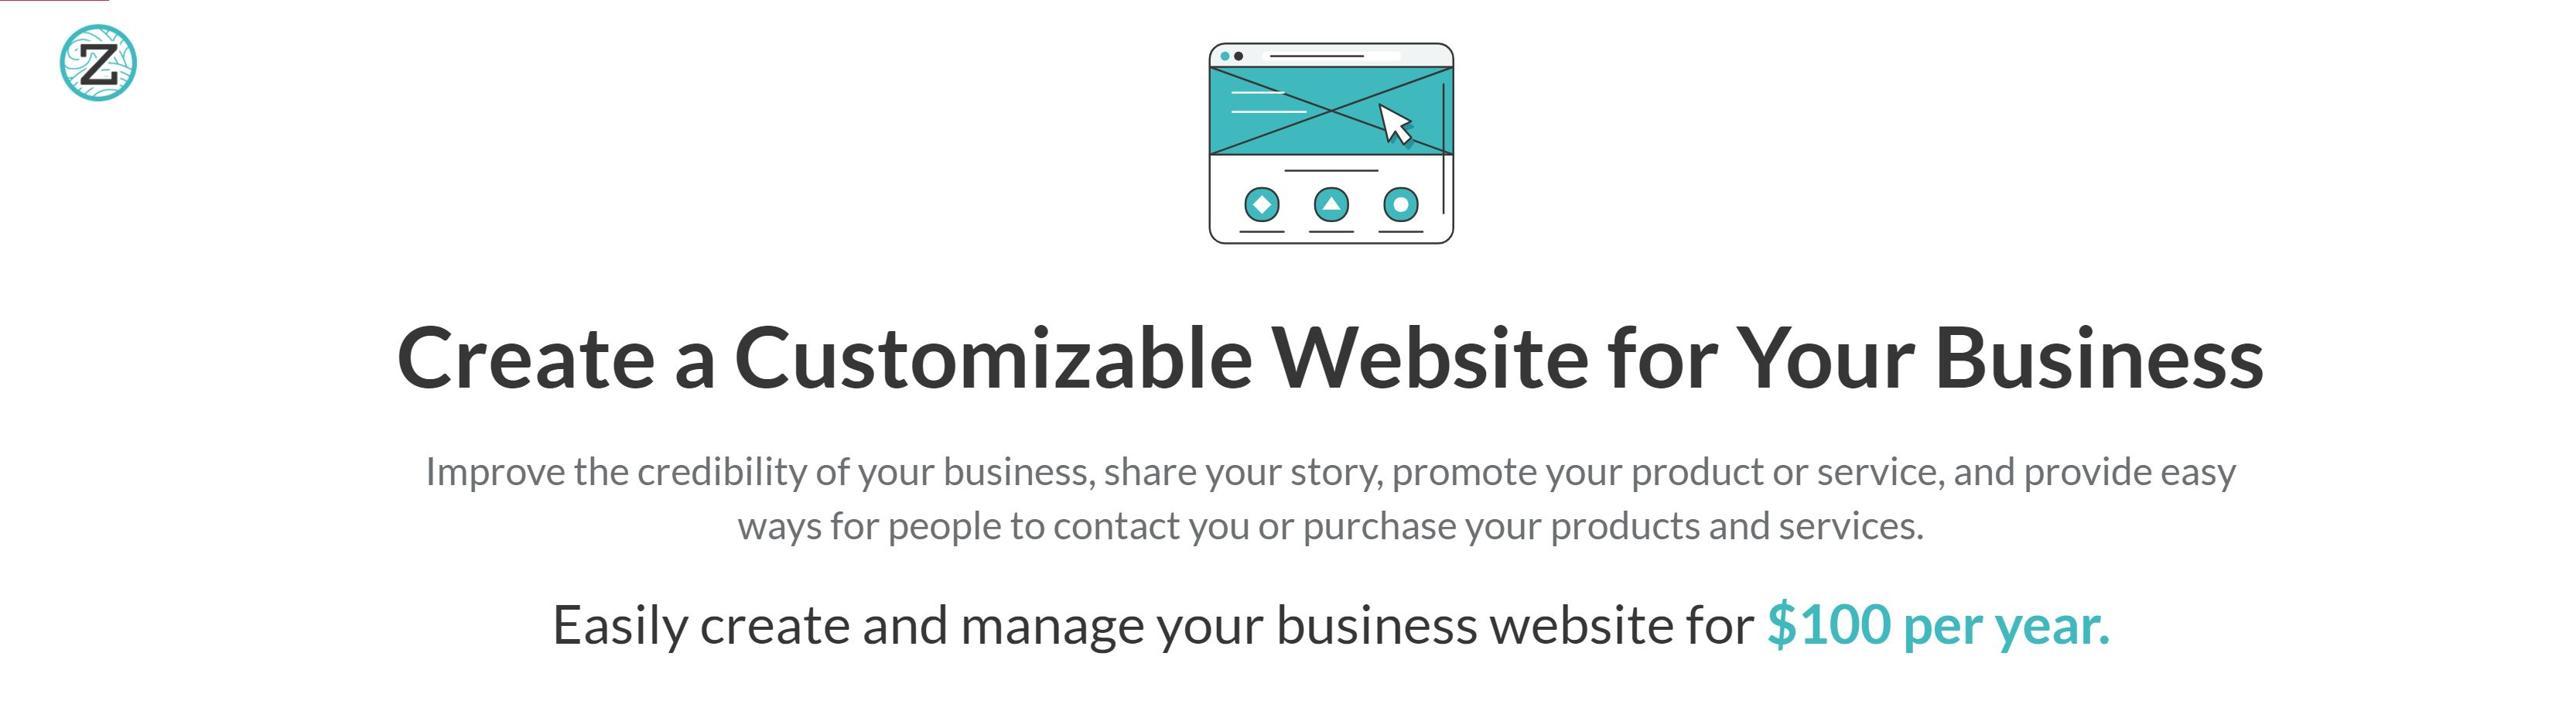 ZenBusiness Websites for business Prices